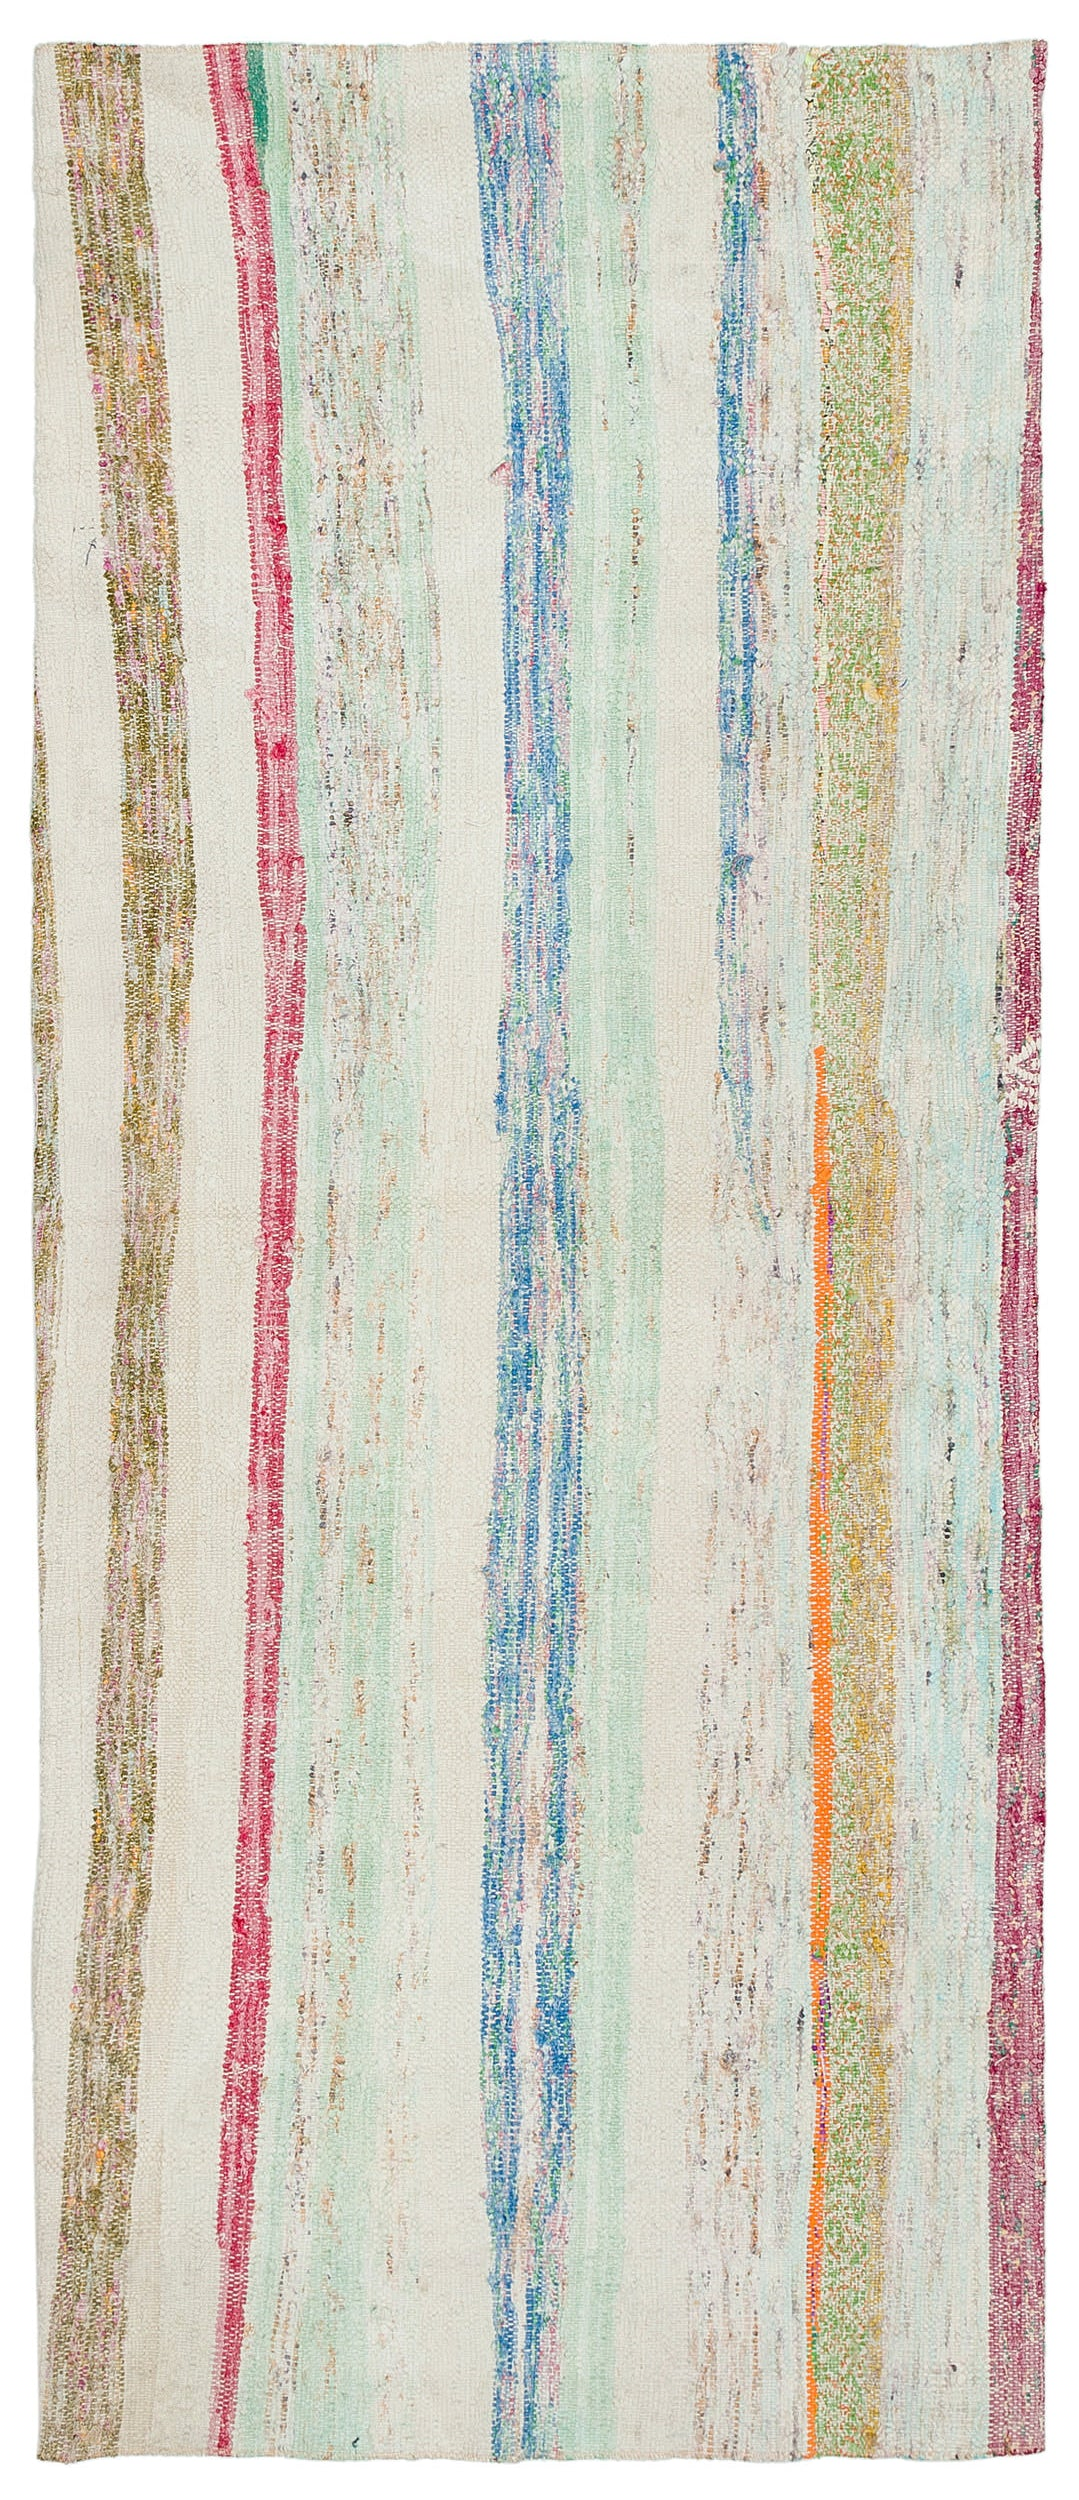 Chaput Over Dyed Kilim Rug 2'5'' x 5'12'' ft 74 x 182 cm